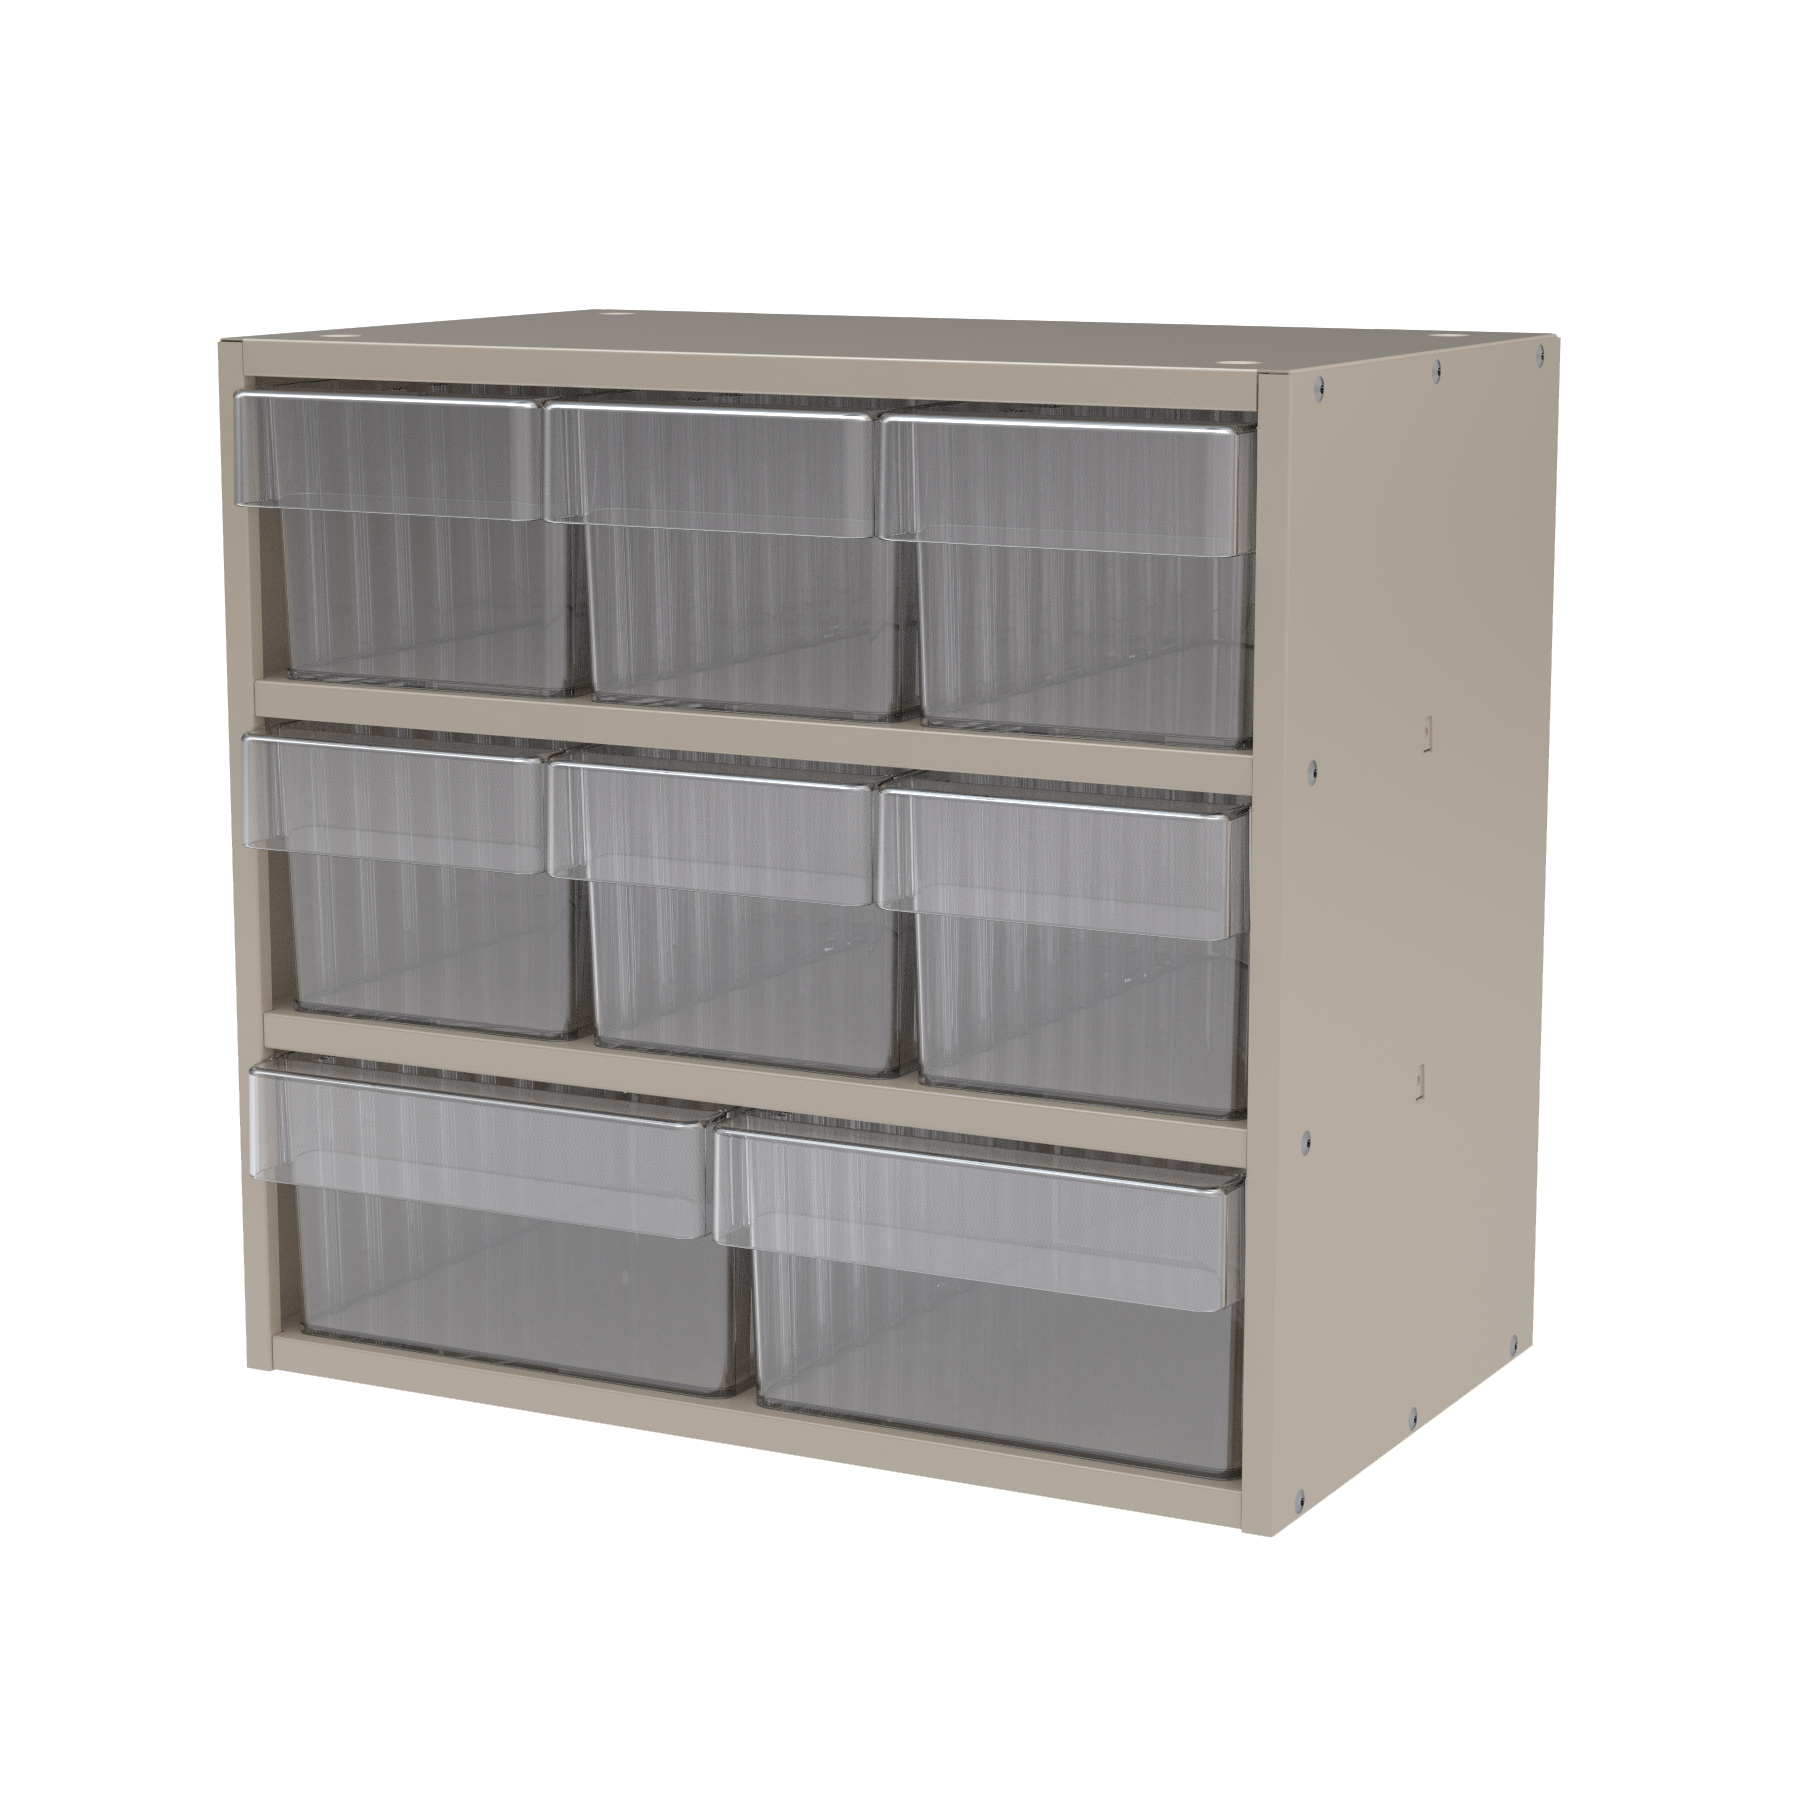 Item DISCONTINUED by Manufacturer.  Modular Cabinet, 18x11x16, 8 Drawers, Putty/Clear (AD1811PASTCRY).  This item sold in carton quantities of 1.